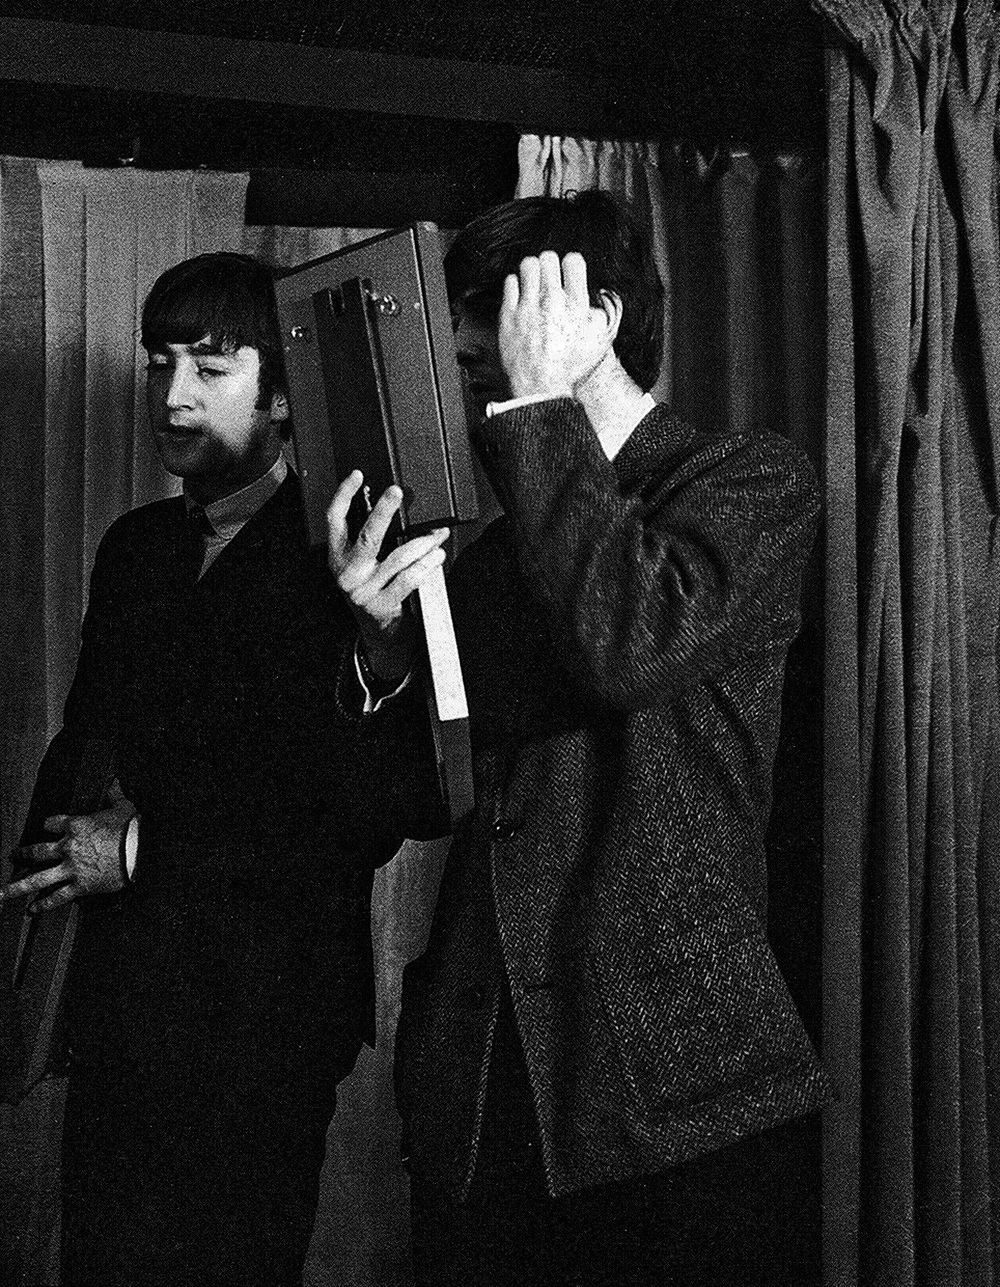 John Lennon and Paul McCartney, circa 1964.